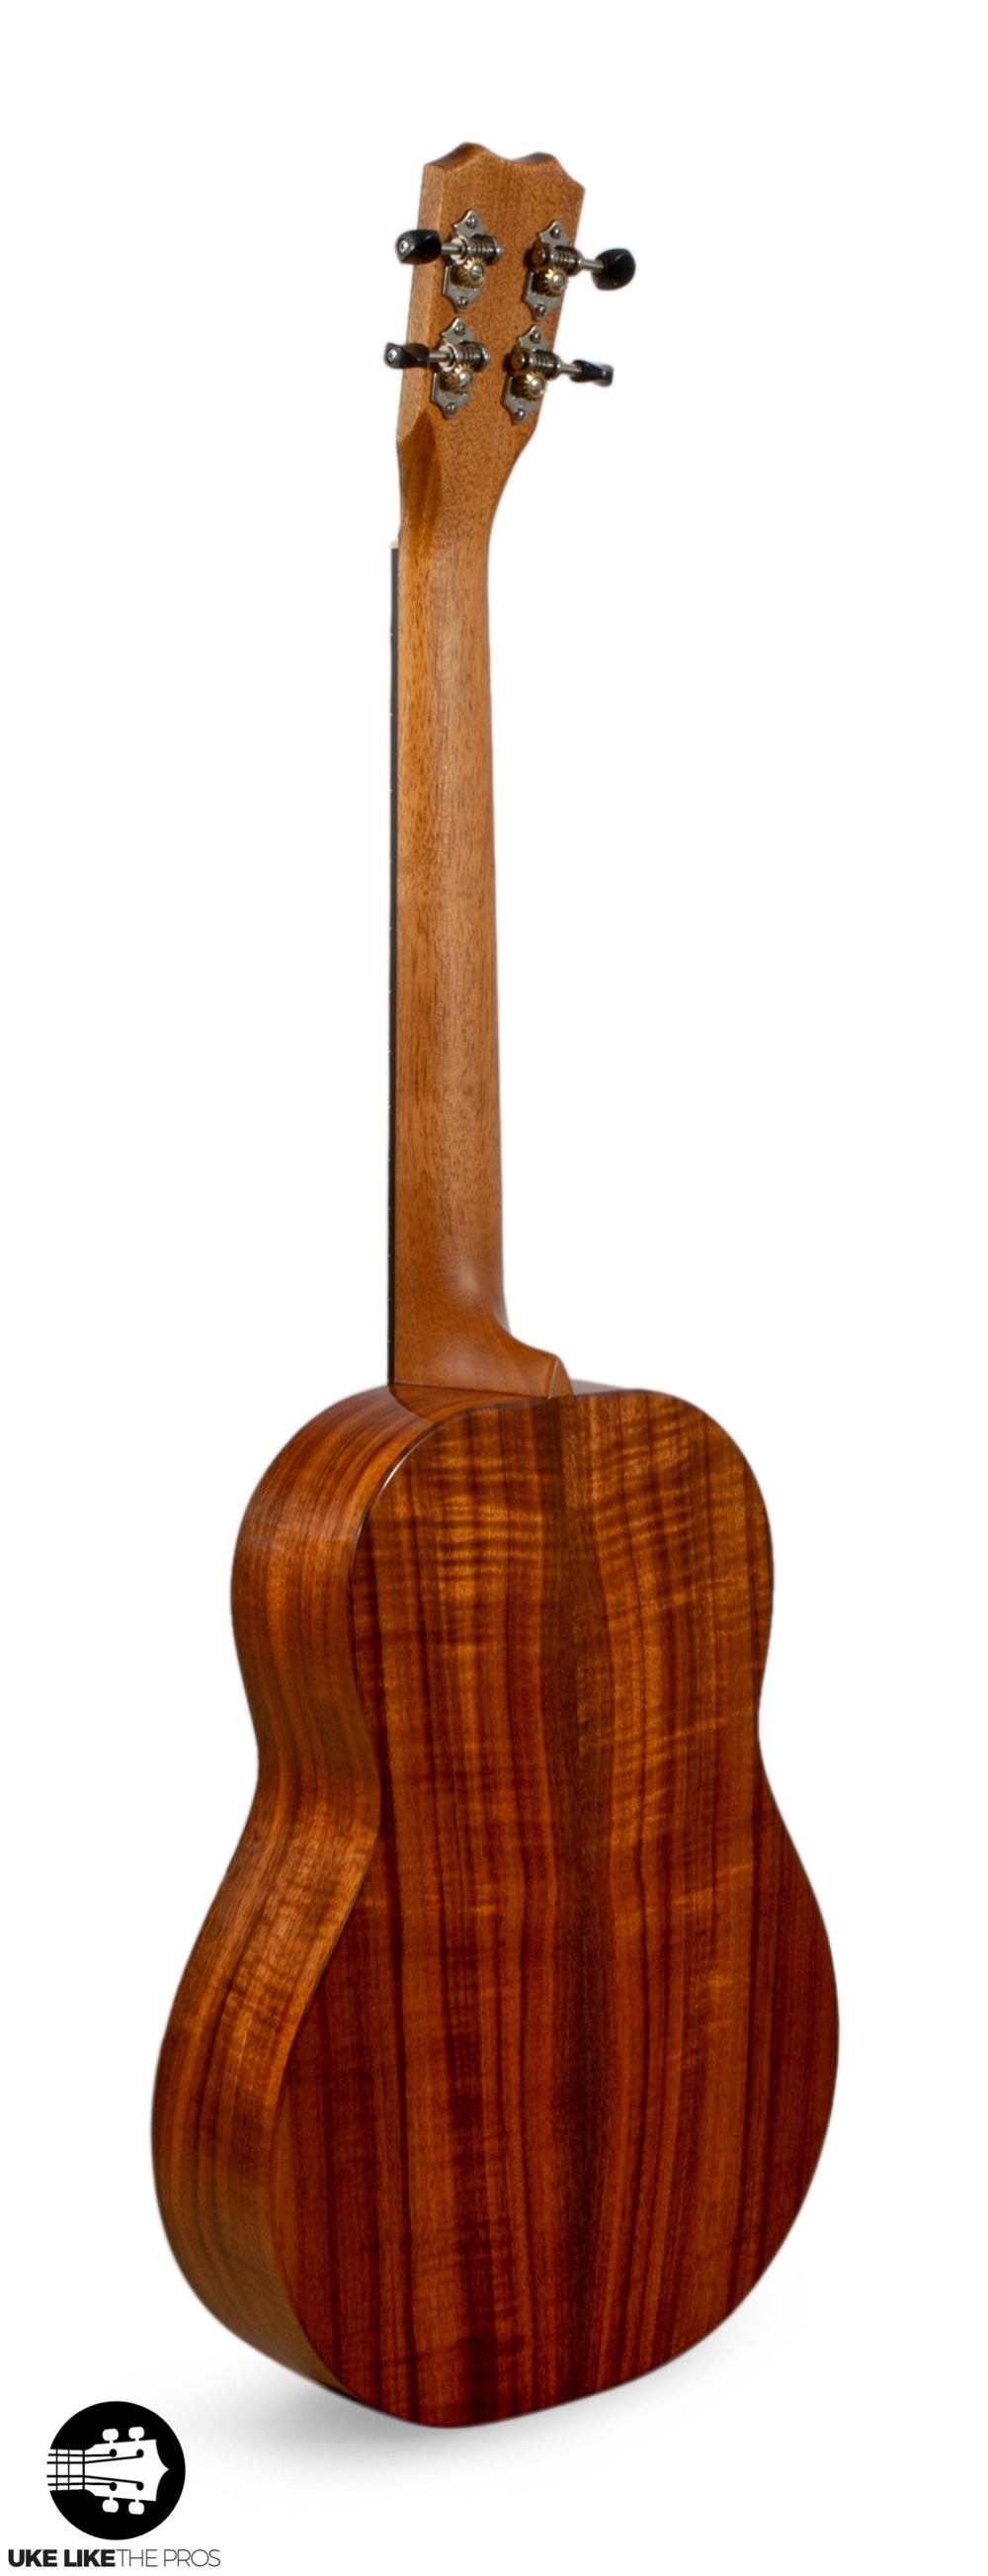 "Kanile'a K-1 B Deluxe Baritone Ukulele Solid Koa ""Kapua"" Made In Hawaii"